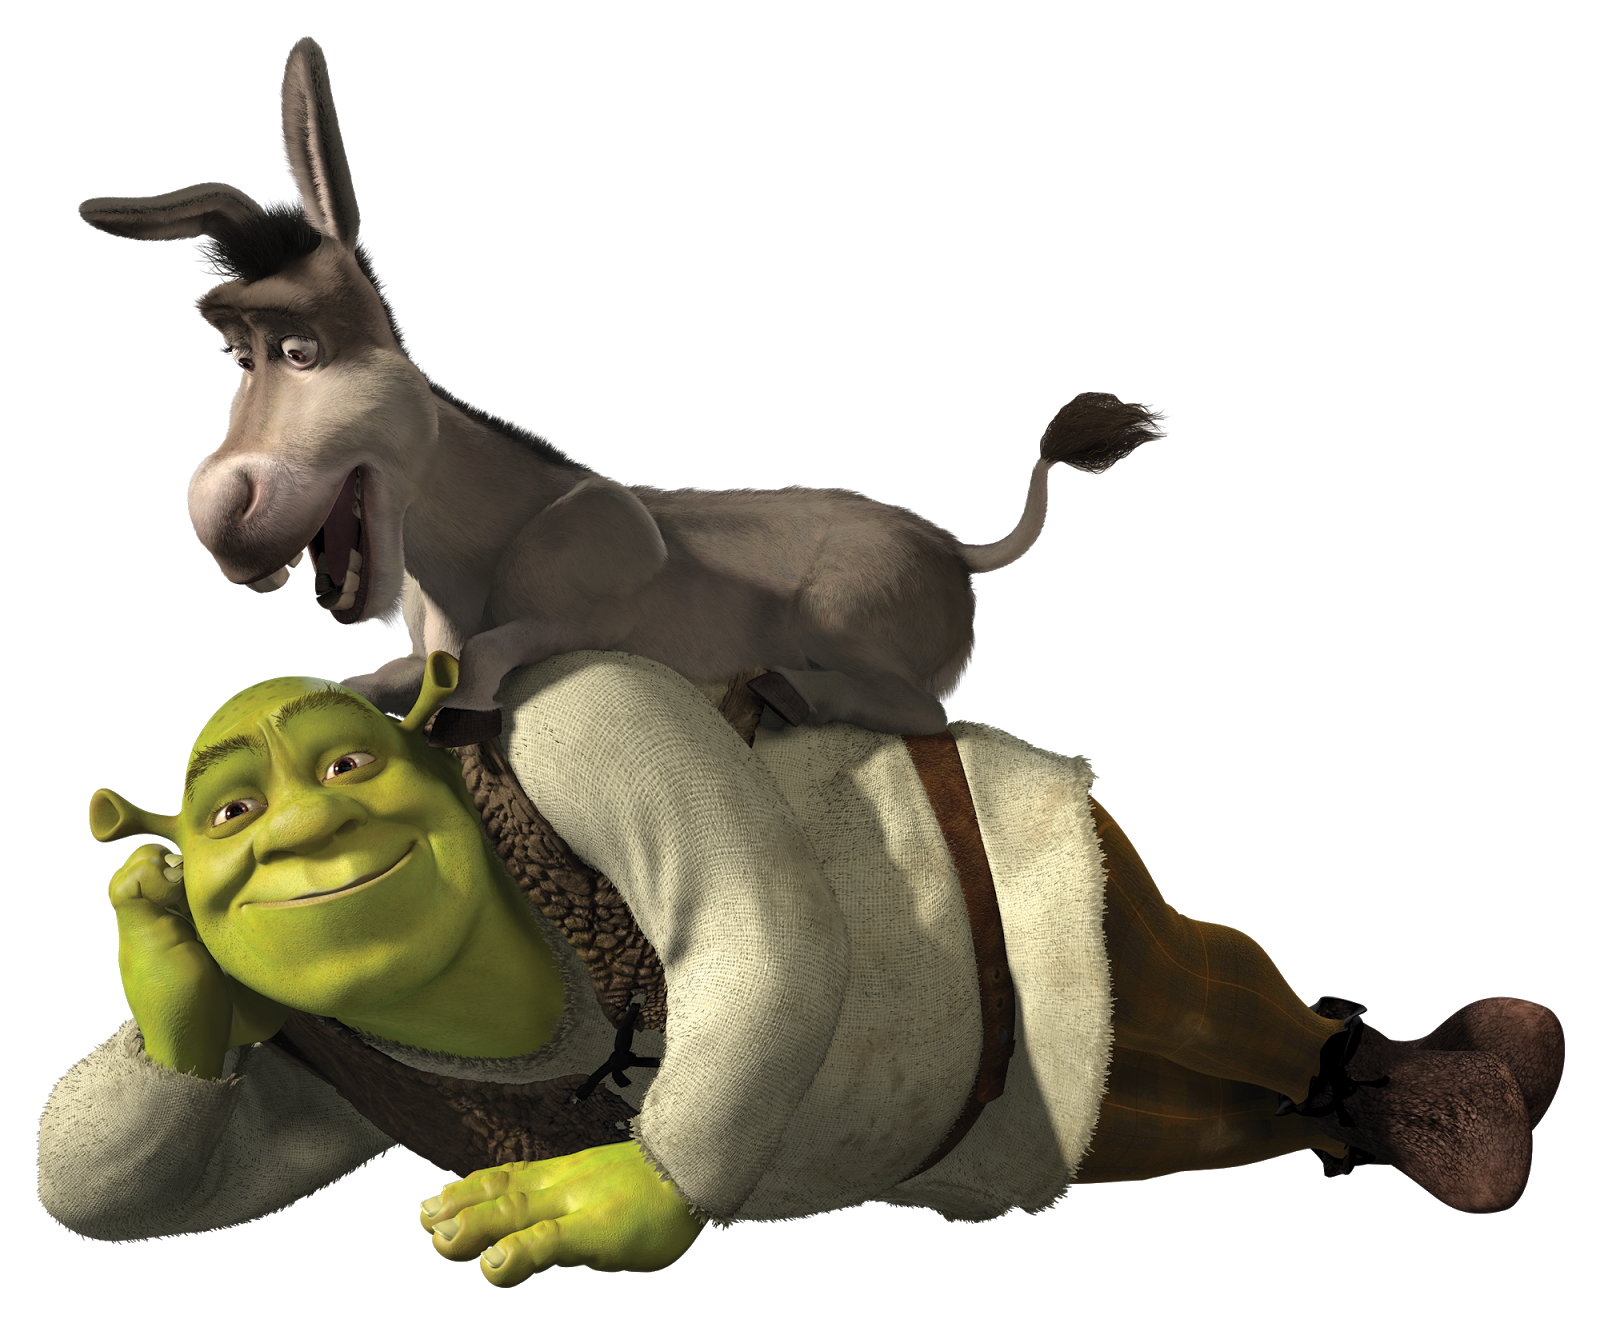 Shrek And Donkey image #47515